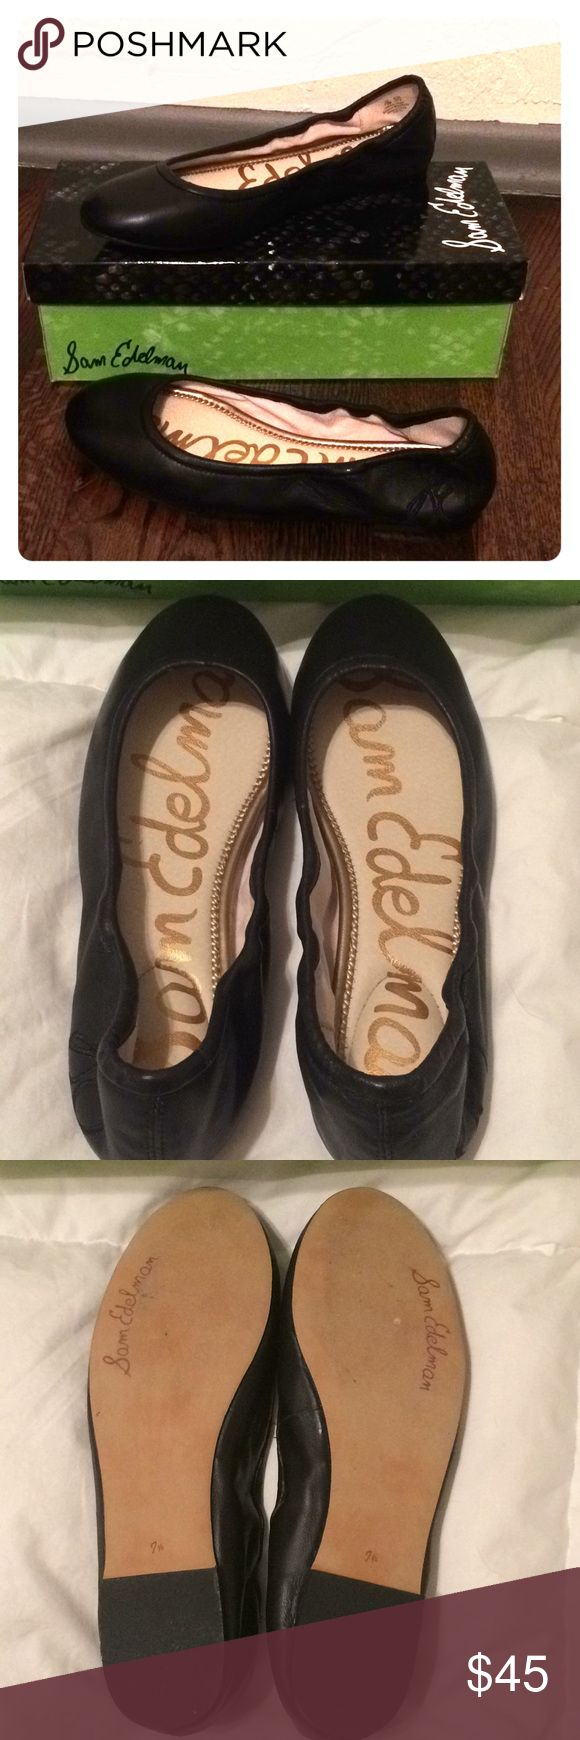 Classic black ballet flats Only worn once. Sam Edelman classic black ballet flats with cushioned sole. Have original box.  Super comfy, runs small Sam Edelman Shoes Flats & Loafers